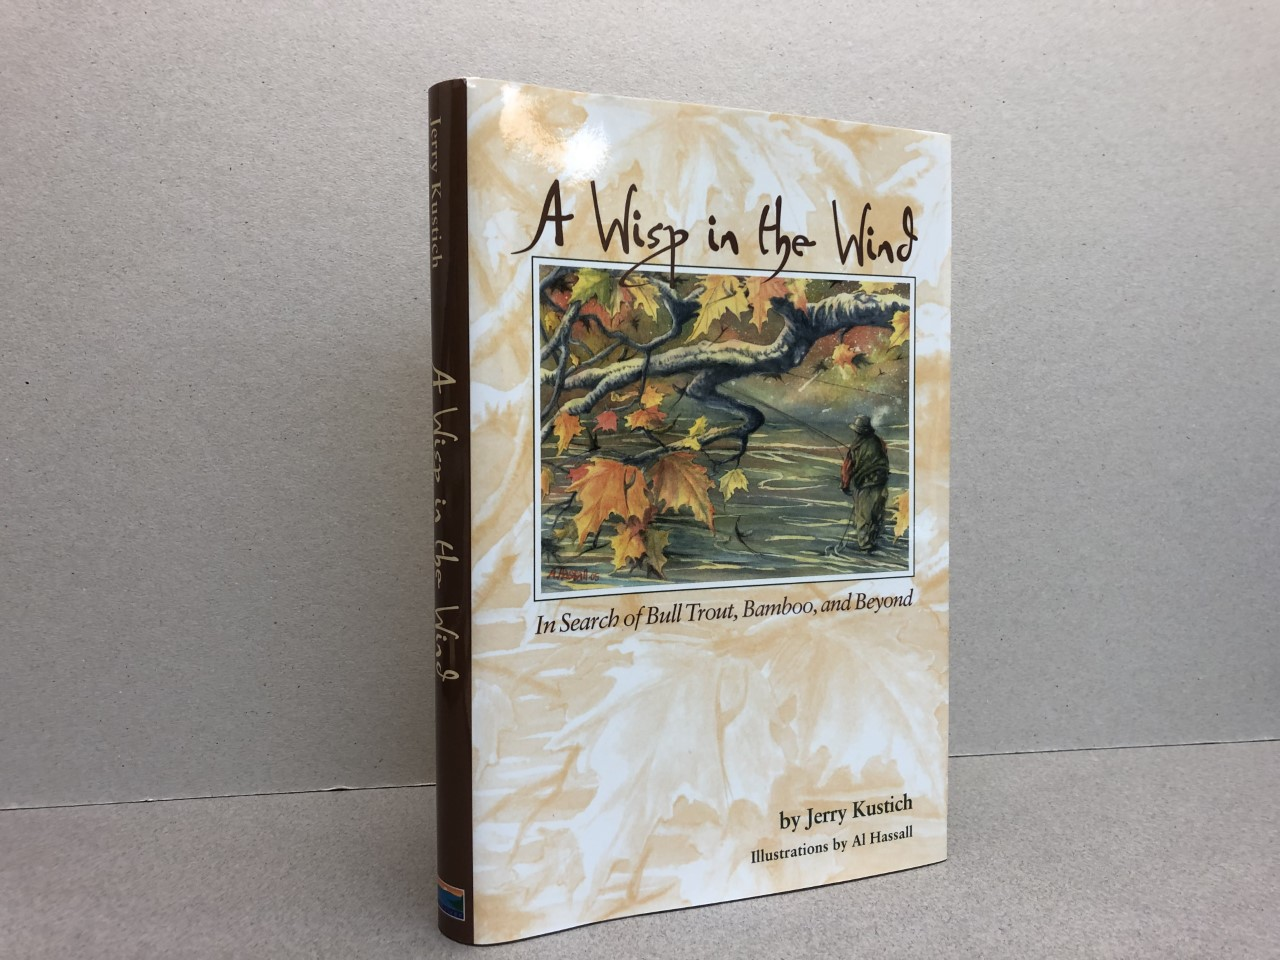 Image for A WISP IN THE WIND : In Search of Bull Trout, Bamboo, and Beyond